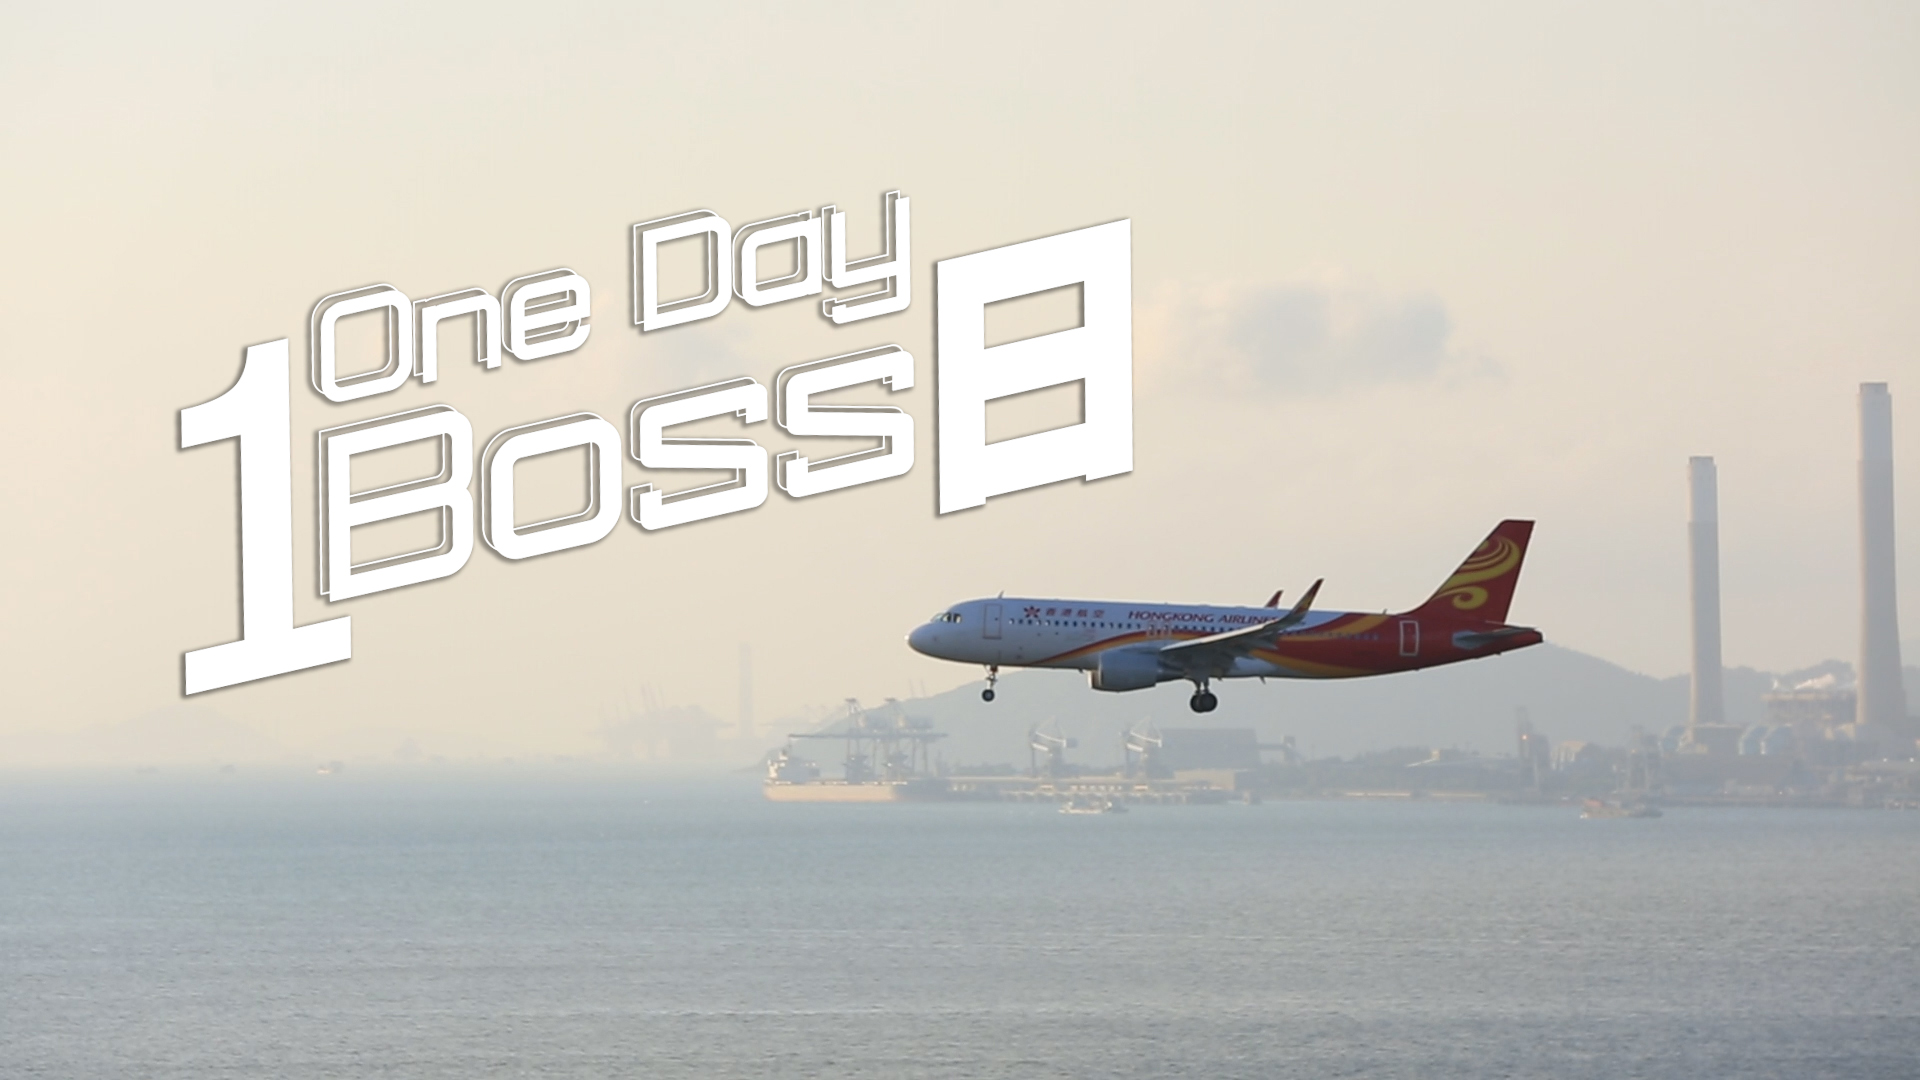 One Day Boss